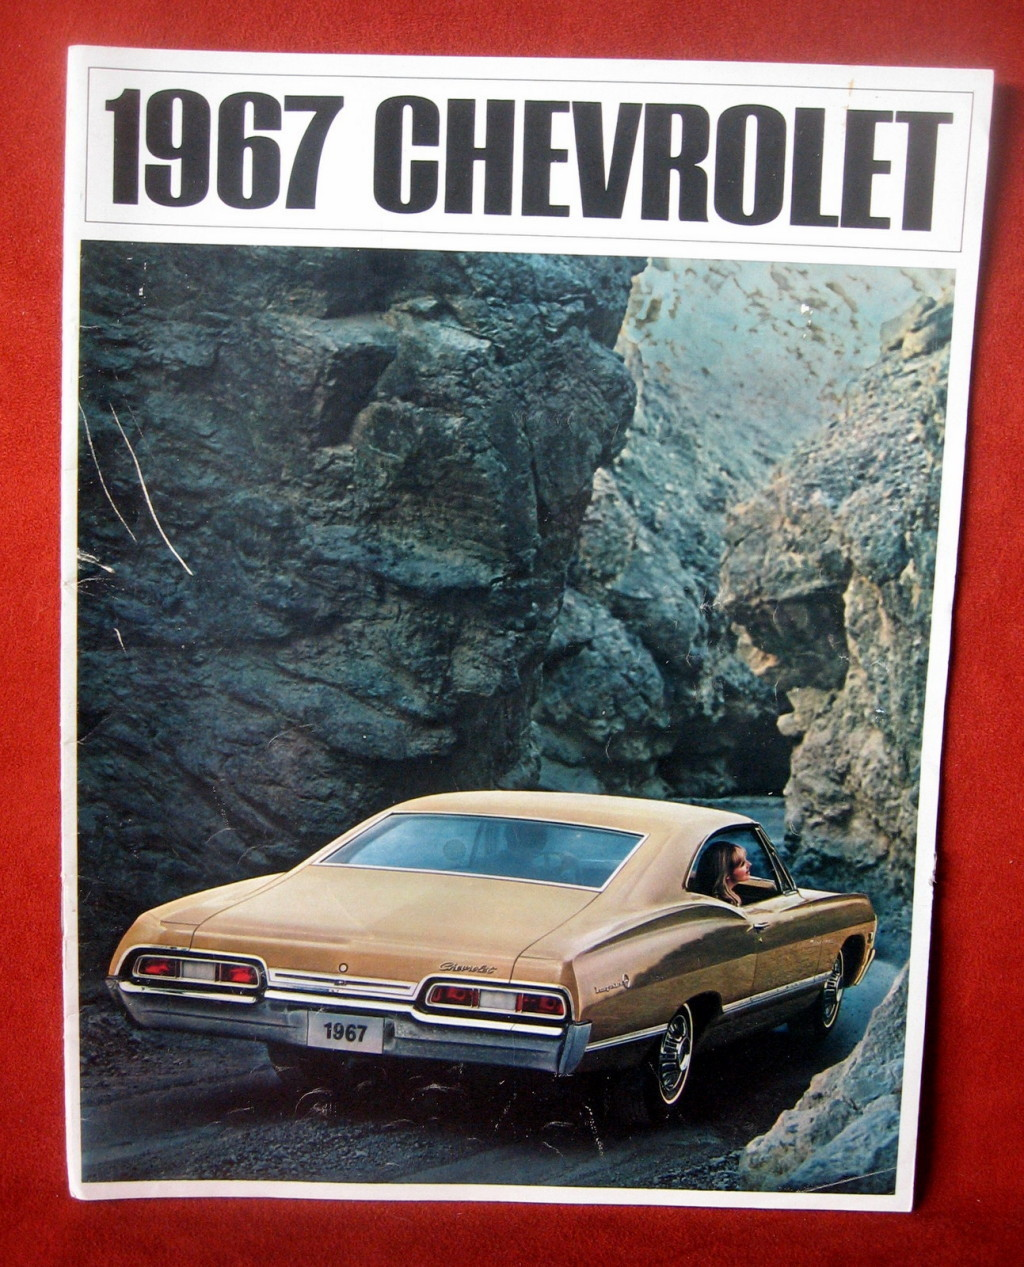 Primary image for Vintage Dealership 1967 Chevrolet Chevy Sales Brochure Caprice Impala Bel Air